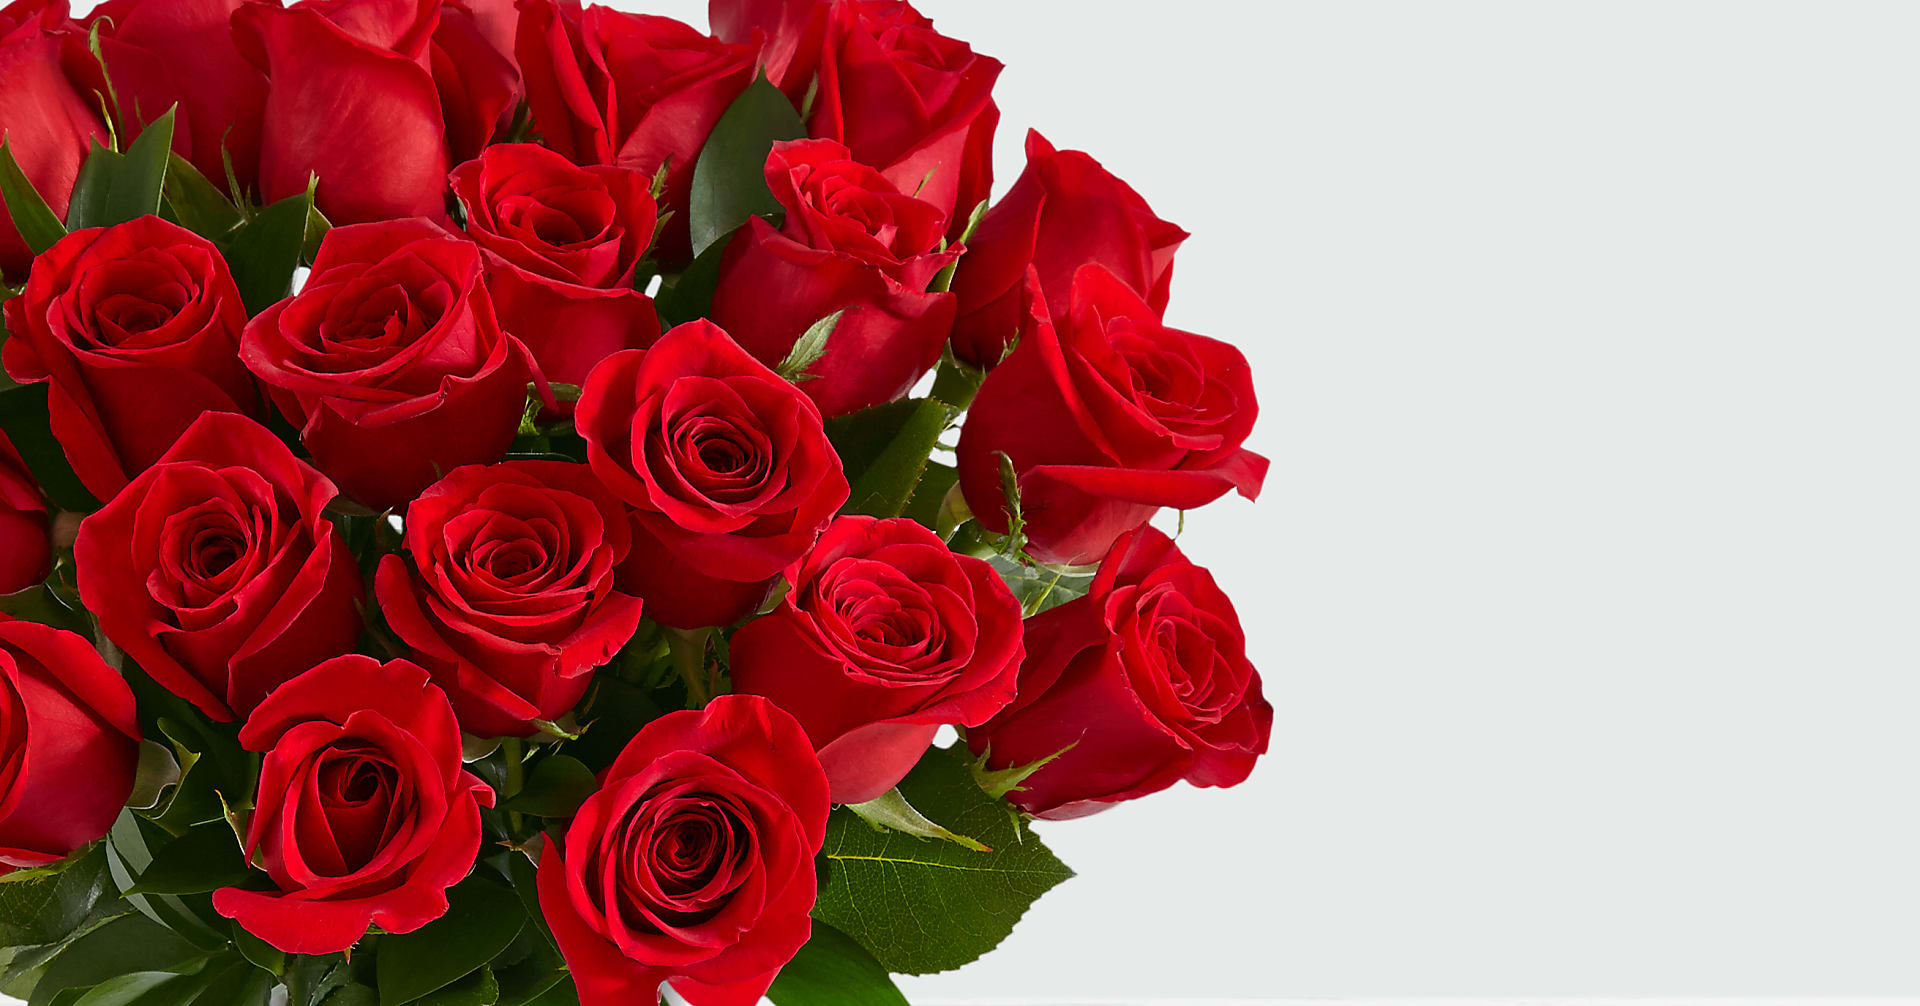 24 Red Roses no vase - Image 3 Of 4